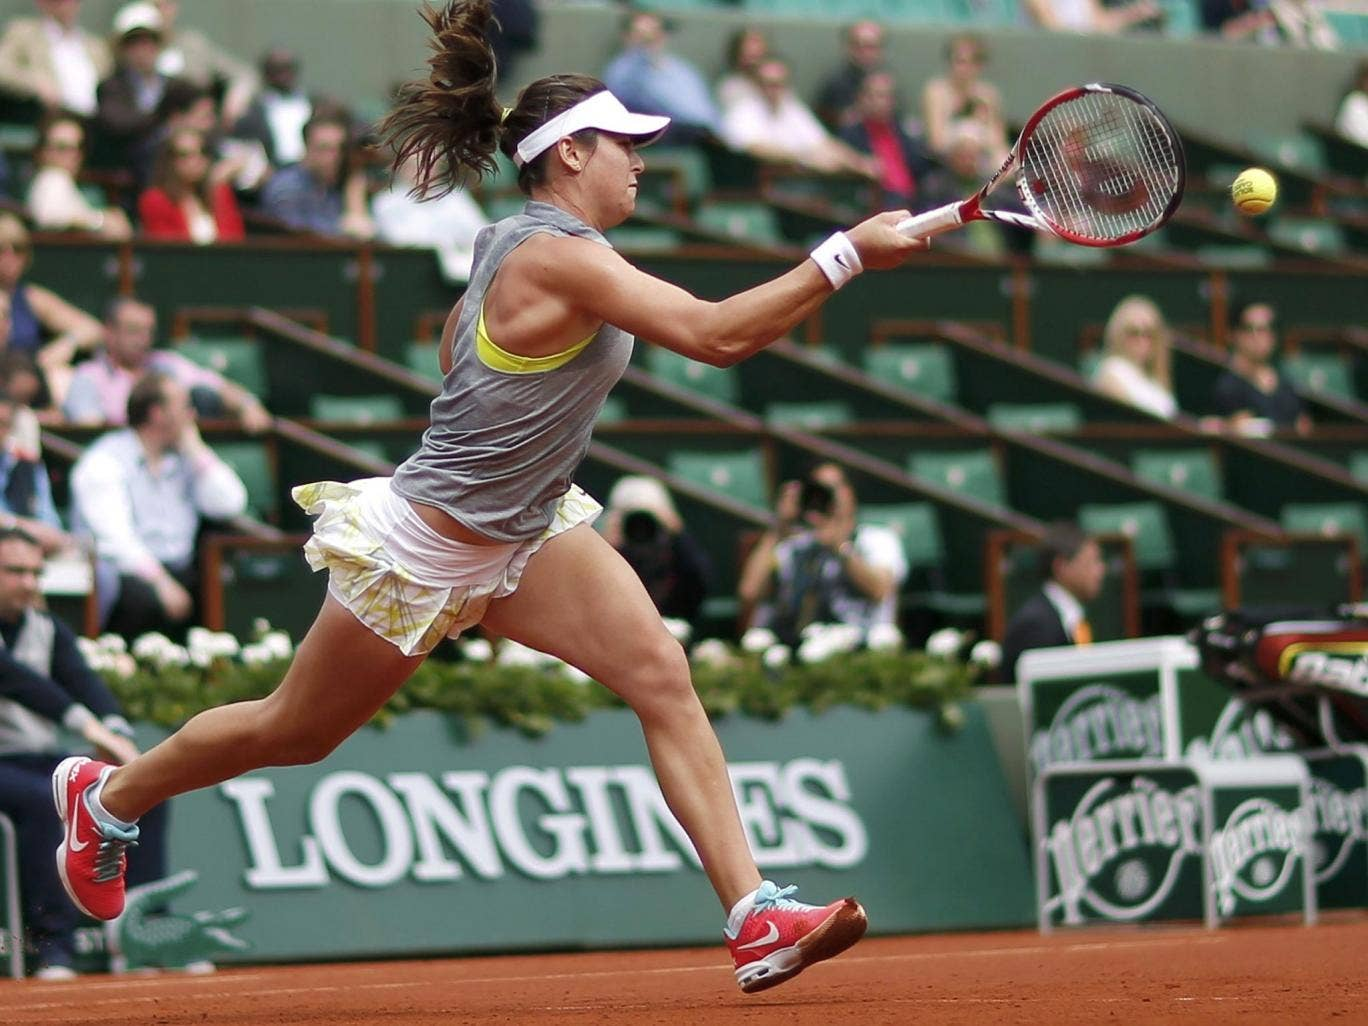 The 21-year-old Croat Ajla Tomljanovic on her way to victory over world No 3 Agnieszka Radwanska at Roland Garros yesterday as the new generation in women's tennis continues to make its mark in Paris